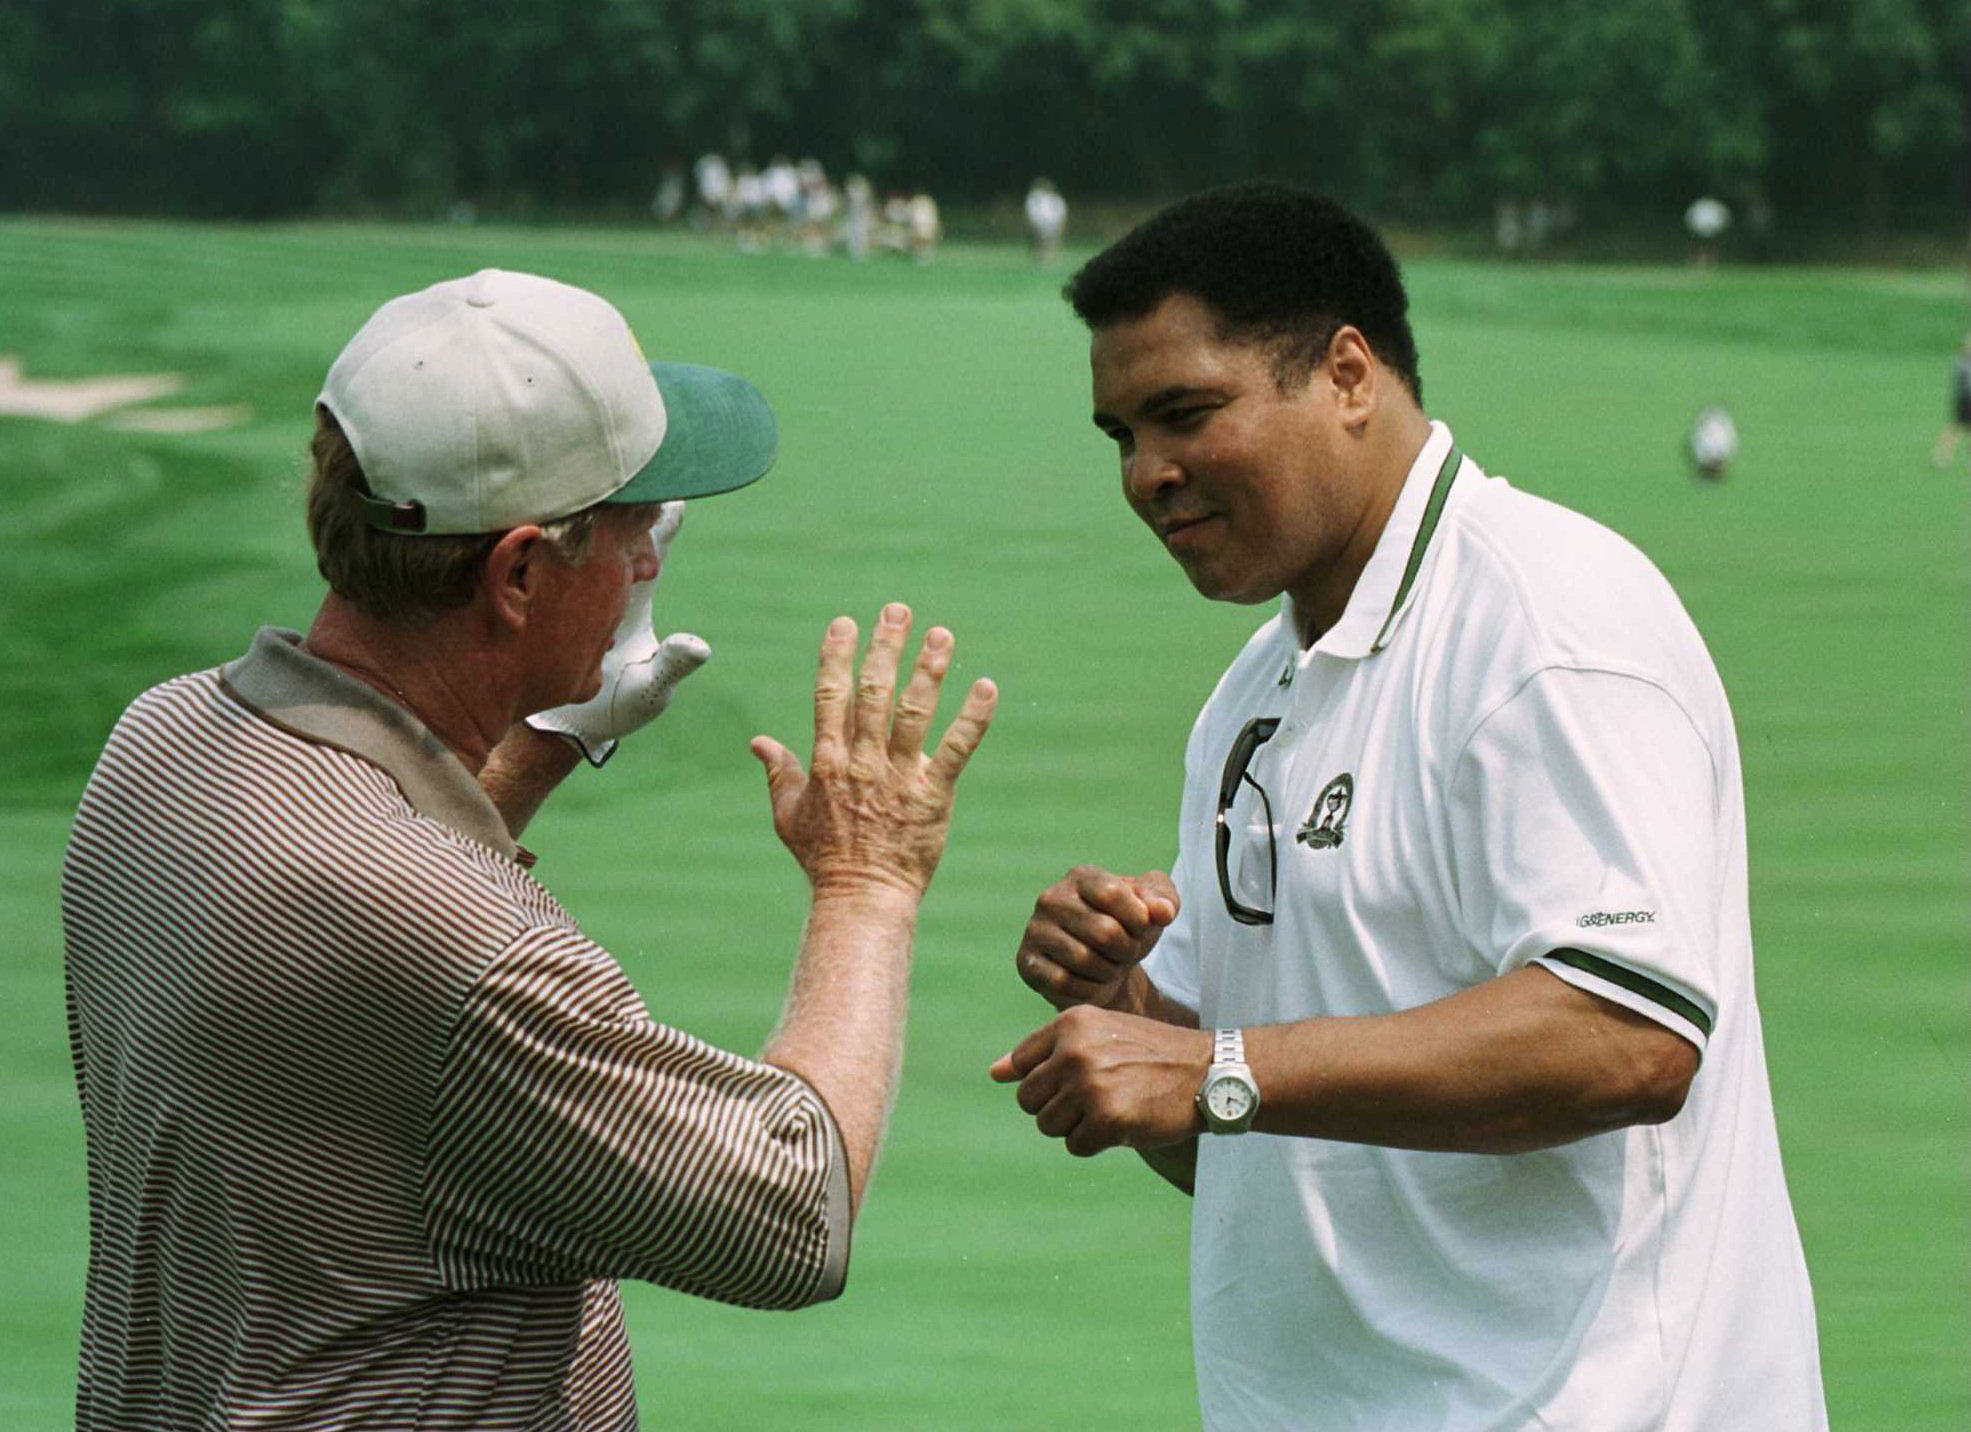 """1996                      With Kentucky hosting its first golf major since the 1952 PGA, the presence of Louisville legend Muhammad Ali does not go unnoticed. On tournament eve, a friendly shadow-boxing match breaks out between Ali and Jack Nicklaus, two titans with claims to the title """"Greatest of All Time."""""""